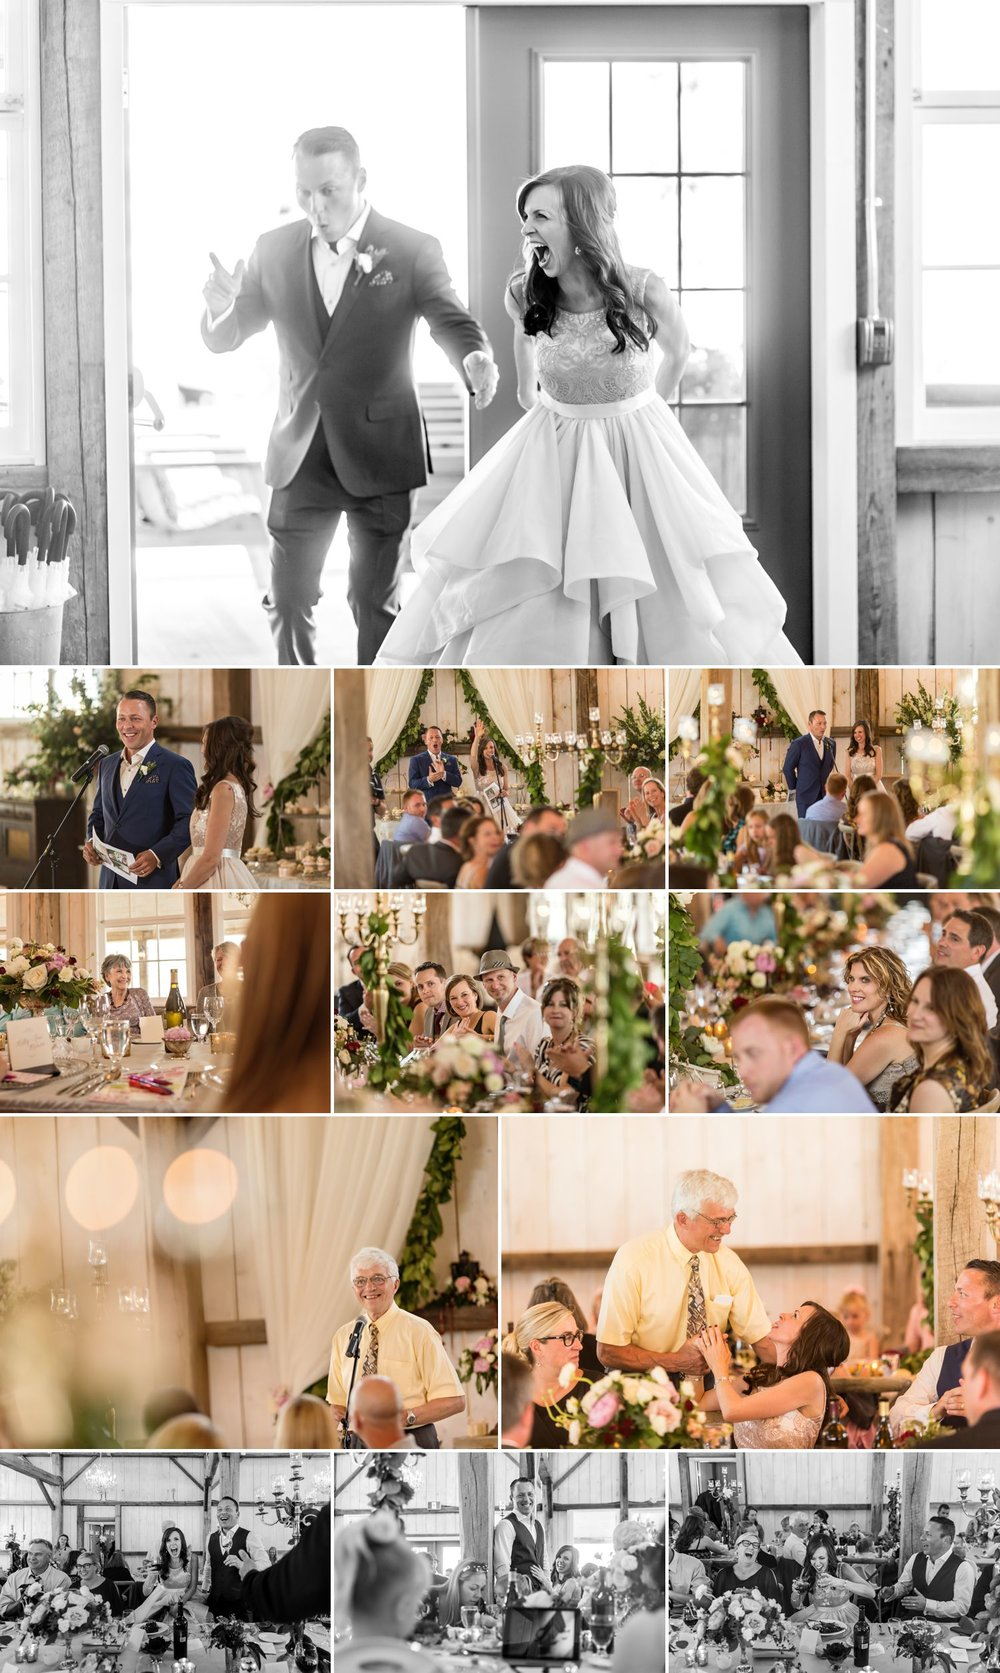 candid reception moments at a wedding at stonefields carleton place ontario